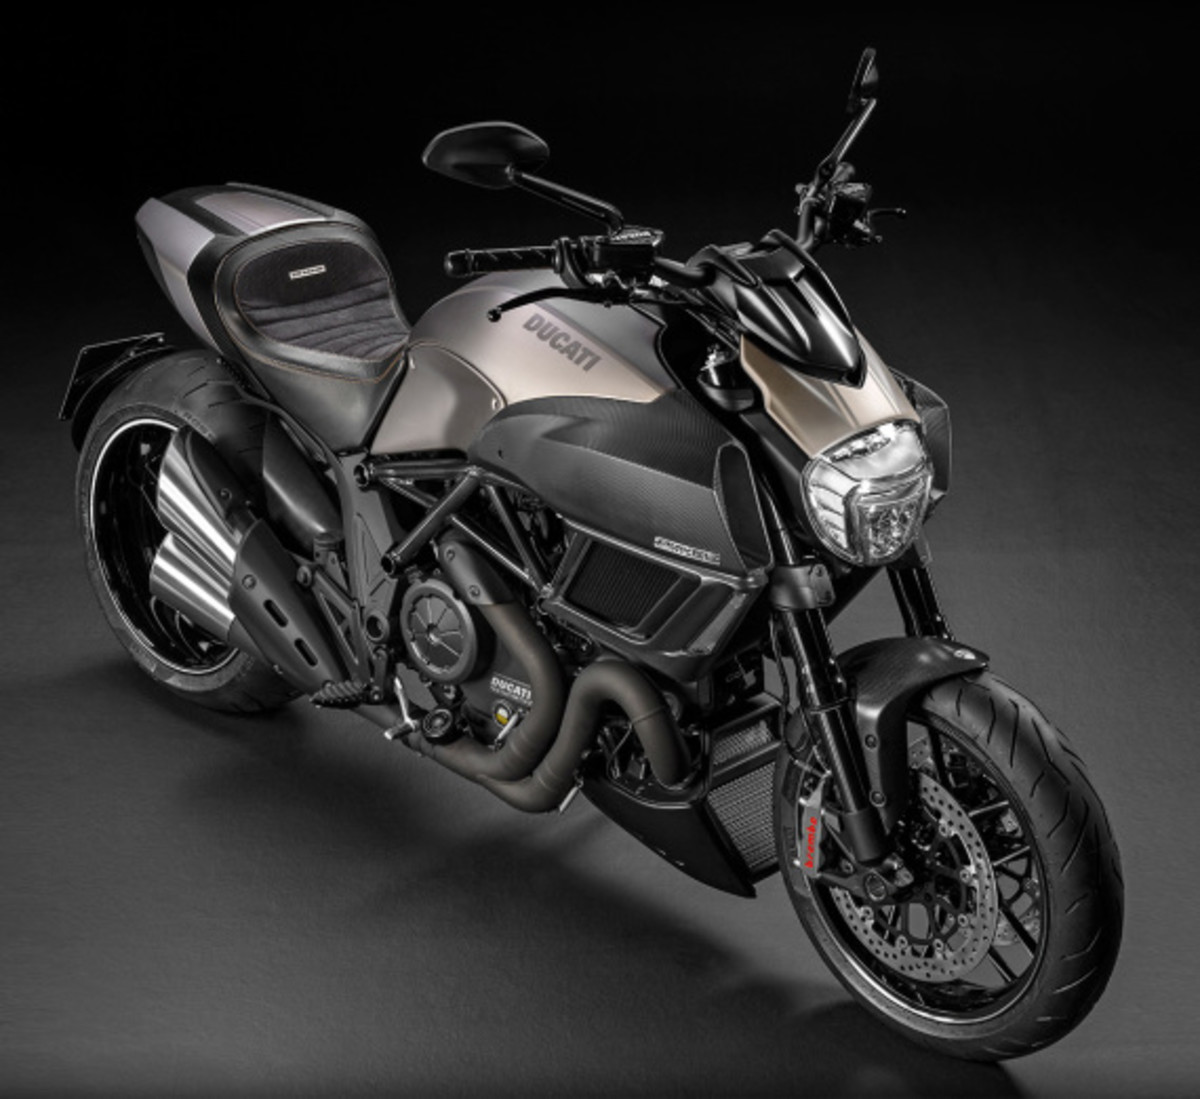 Ducati Diavel Titanium - Limited Edition Motorcycle - 1